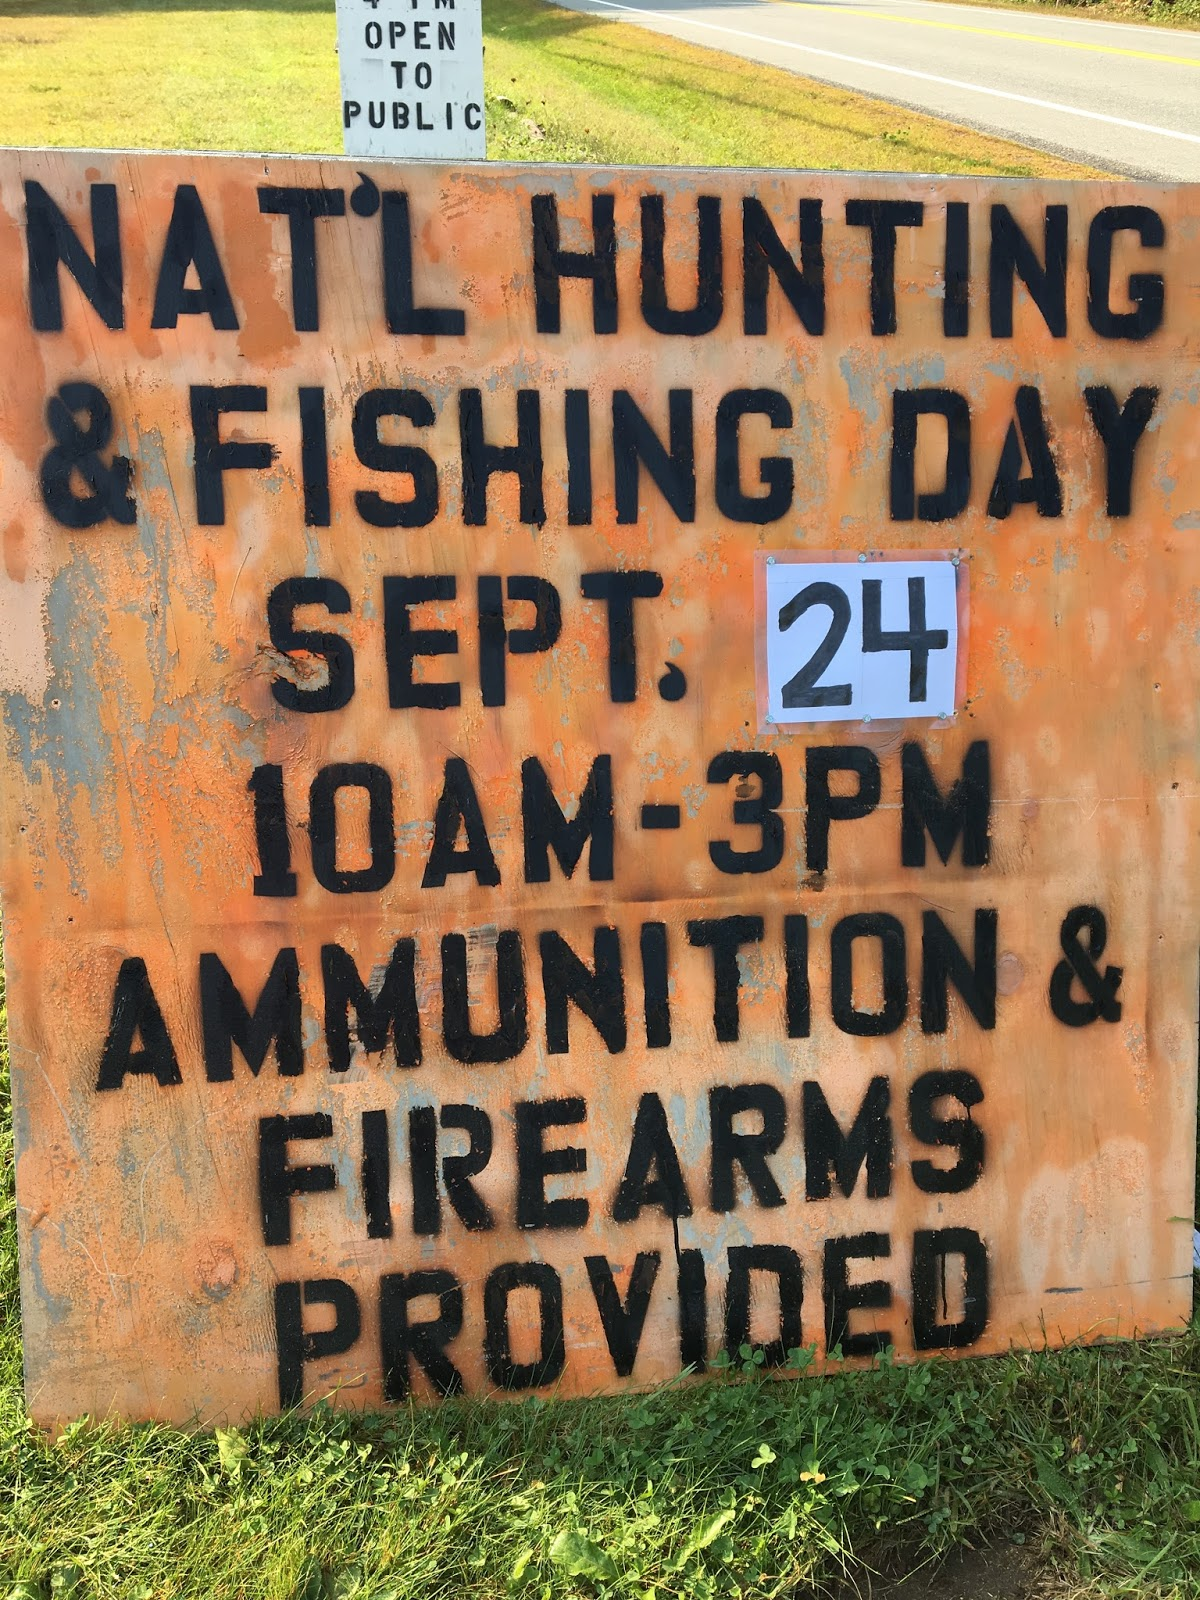 Weathersfield vermont news for National fishing association